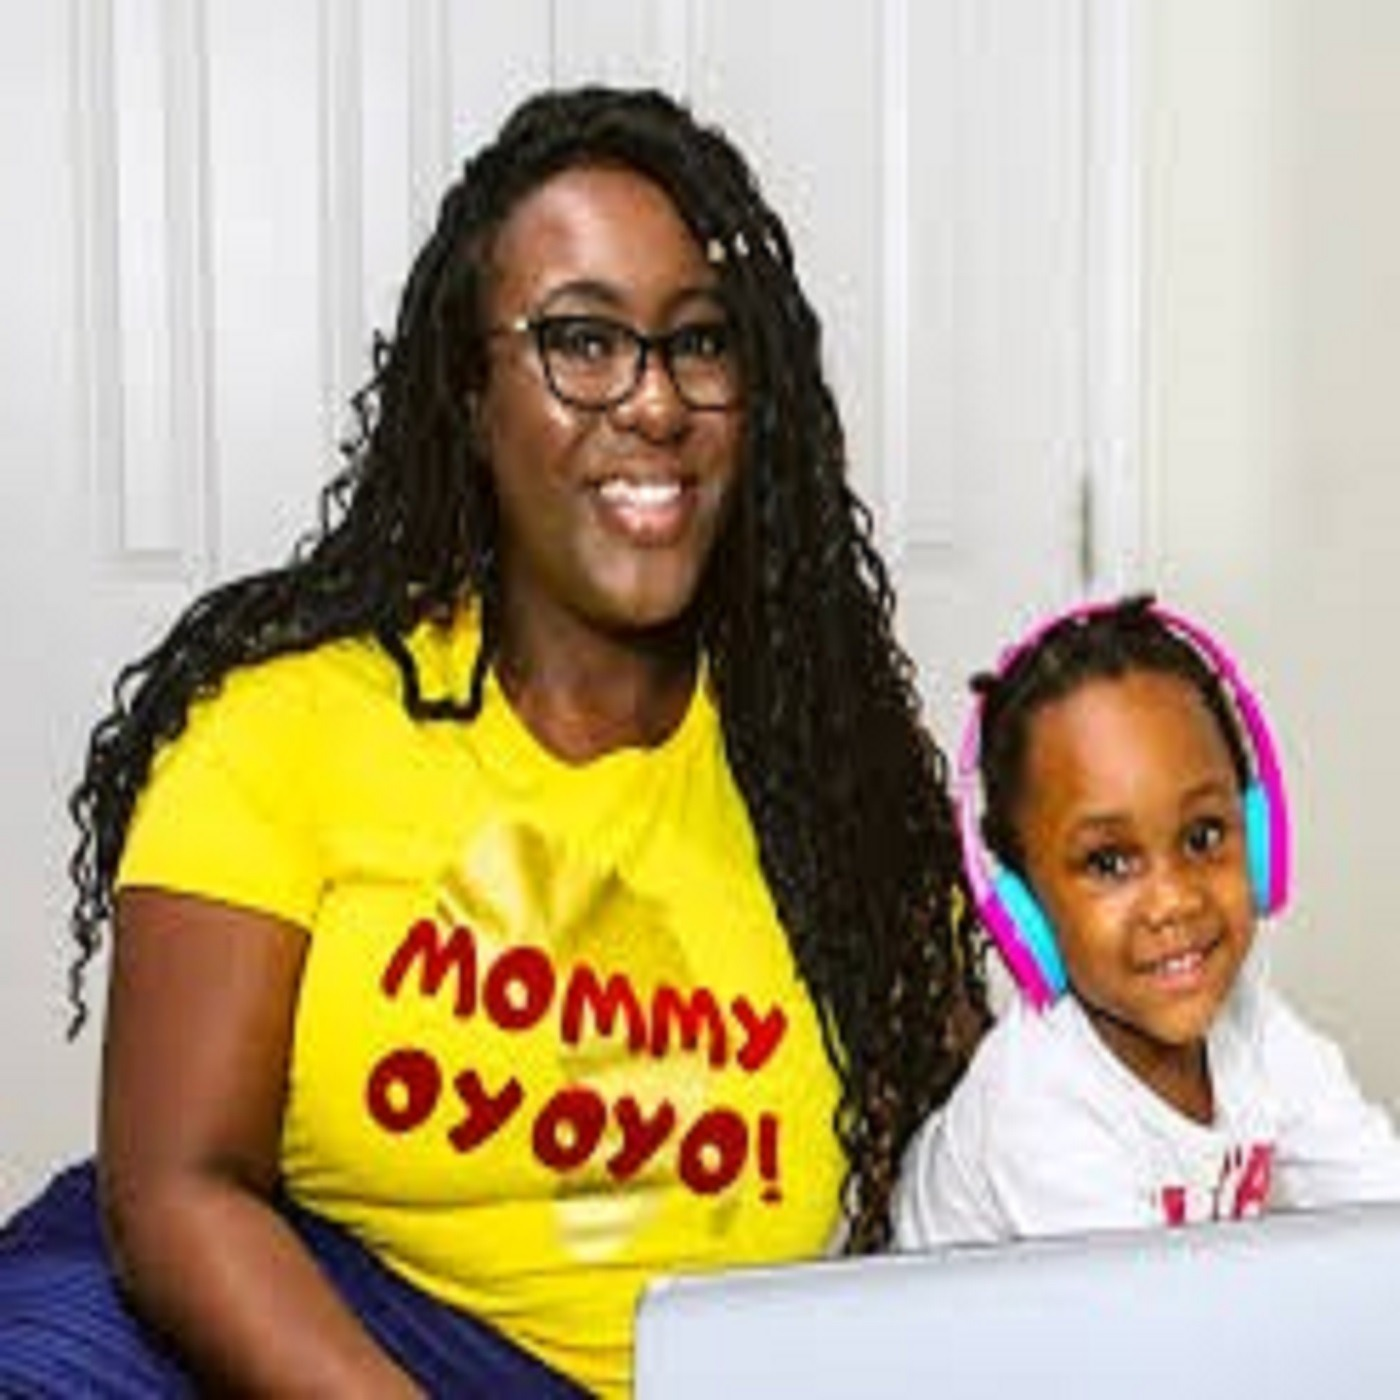 GVN Presents: The Lights, Camera, Pro Interview w/ Mommy Oyoyo